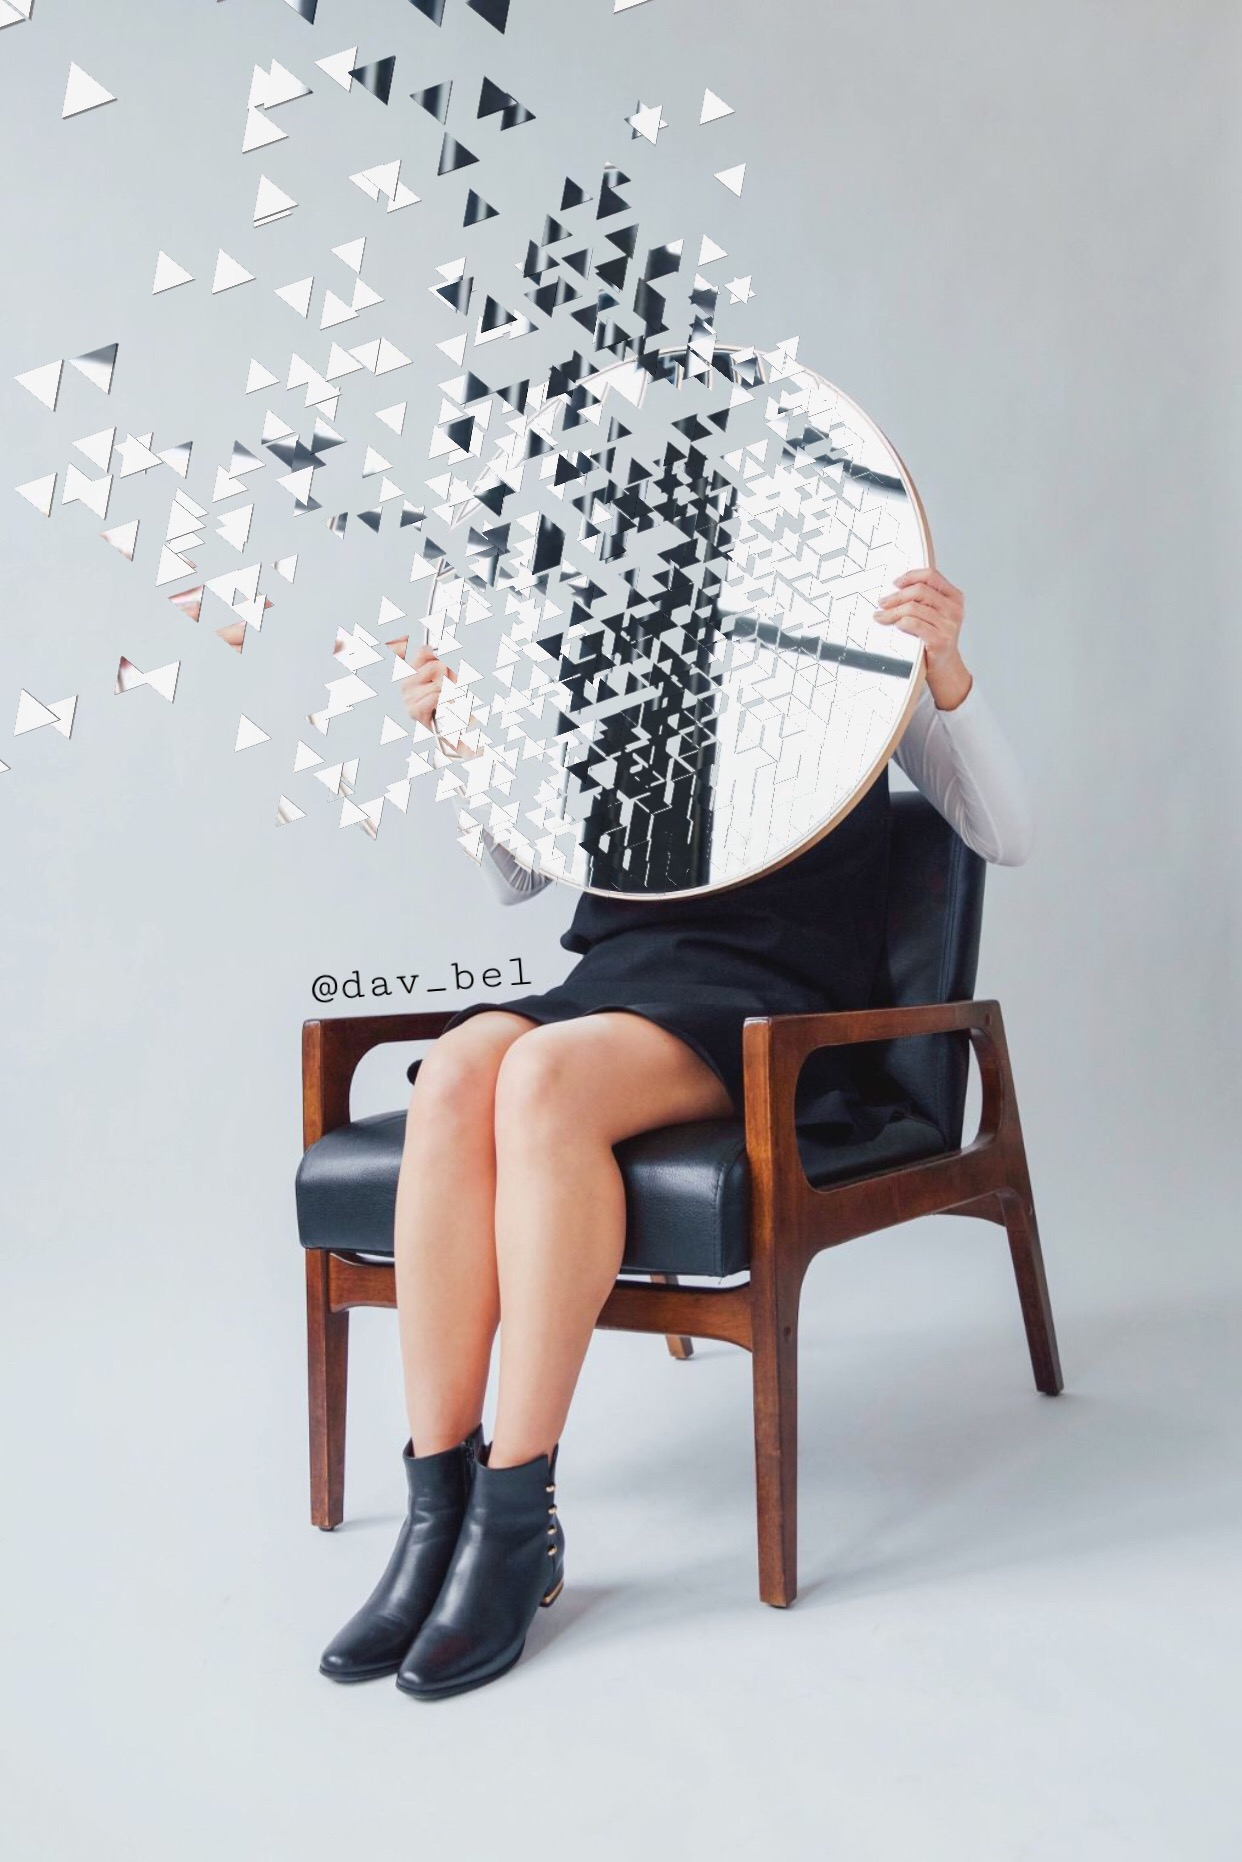 #freetoedit #dispersion #mirror #girl #chair